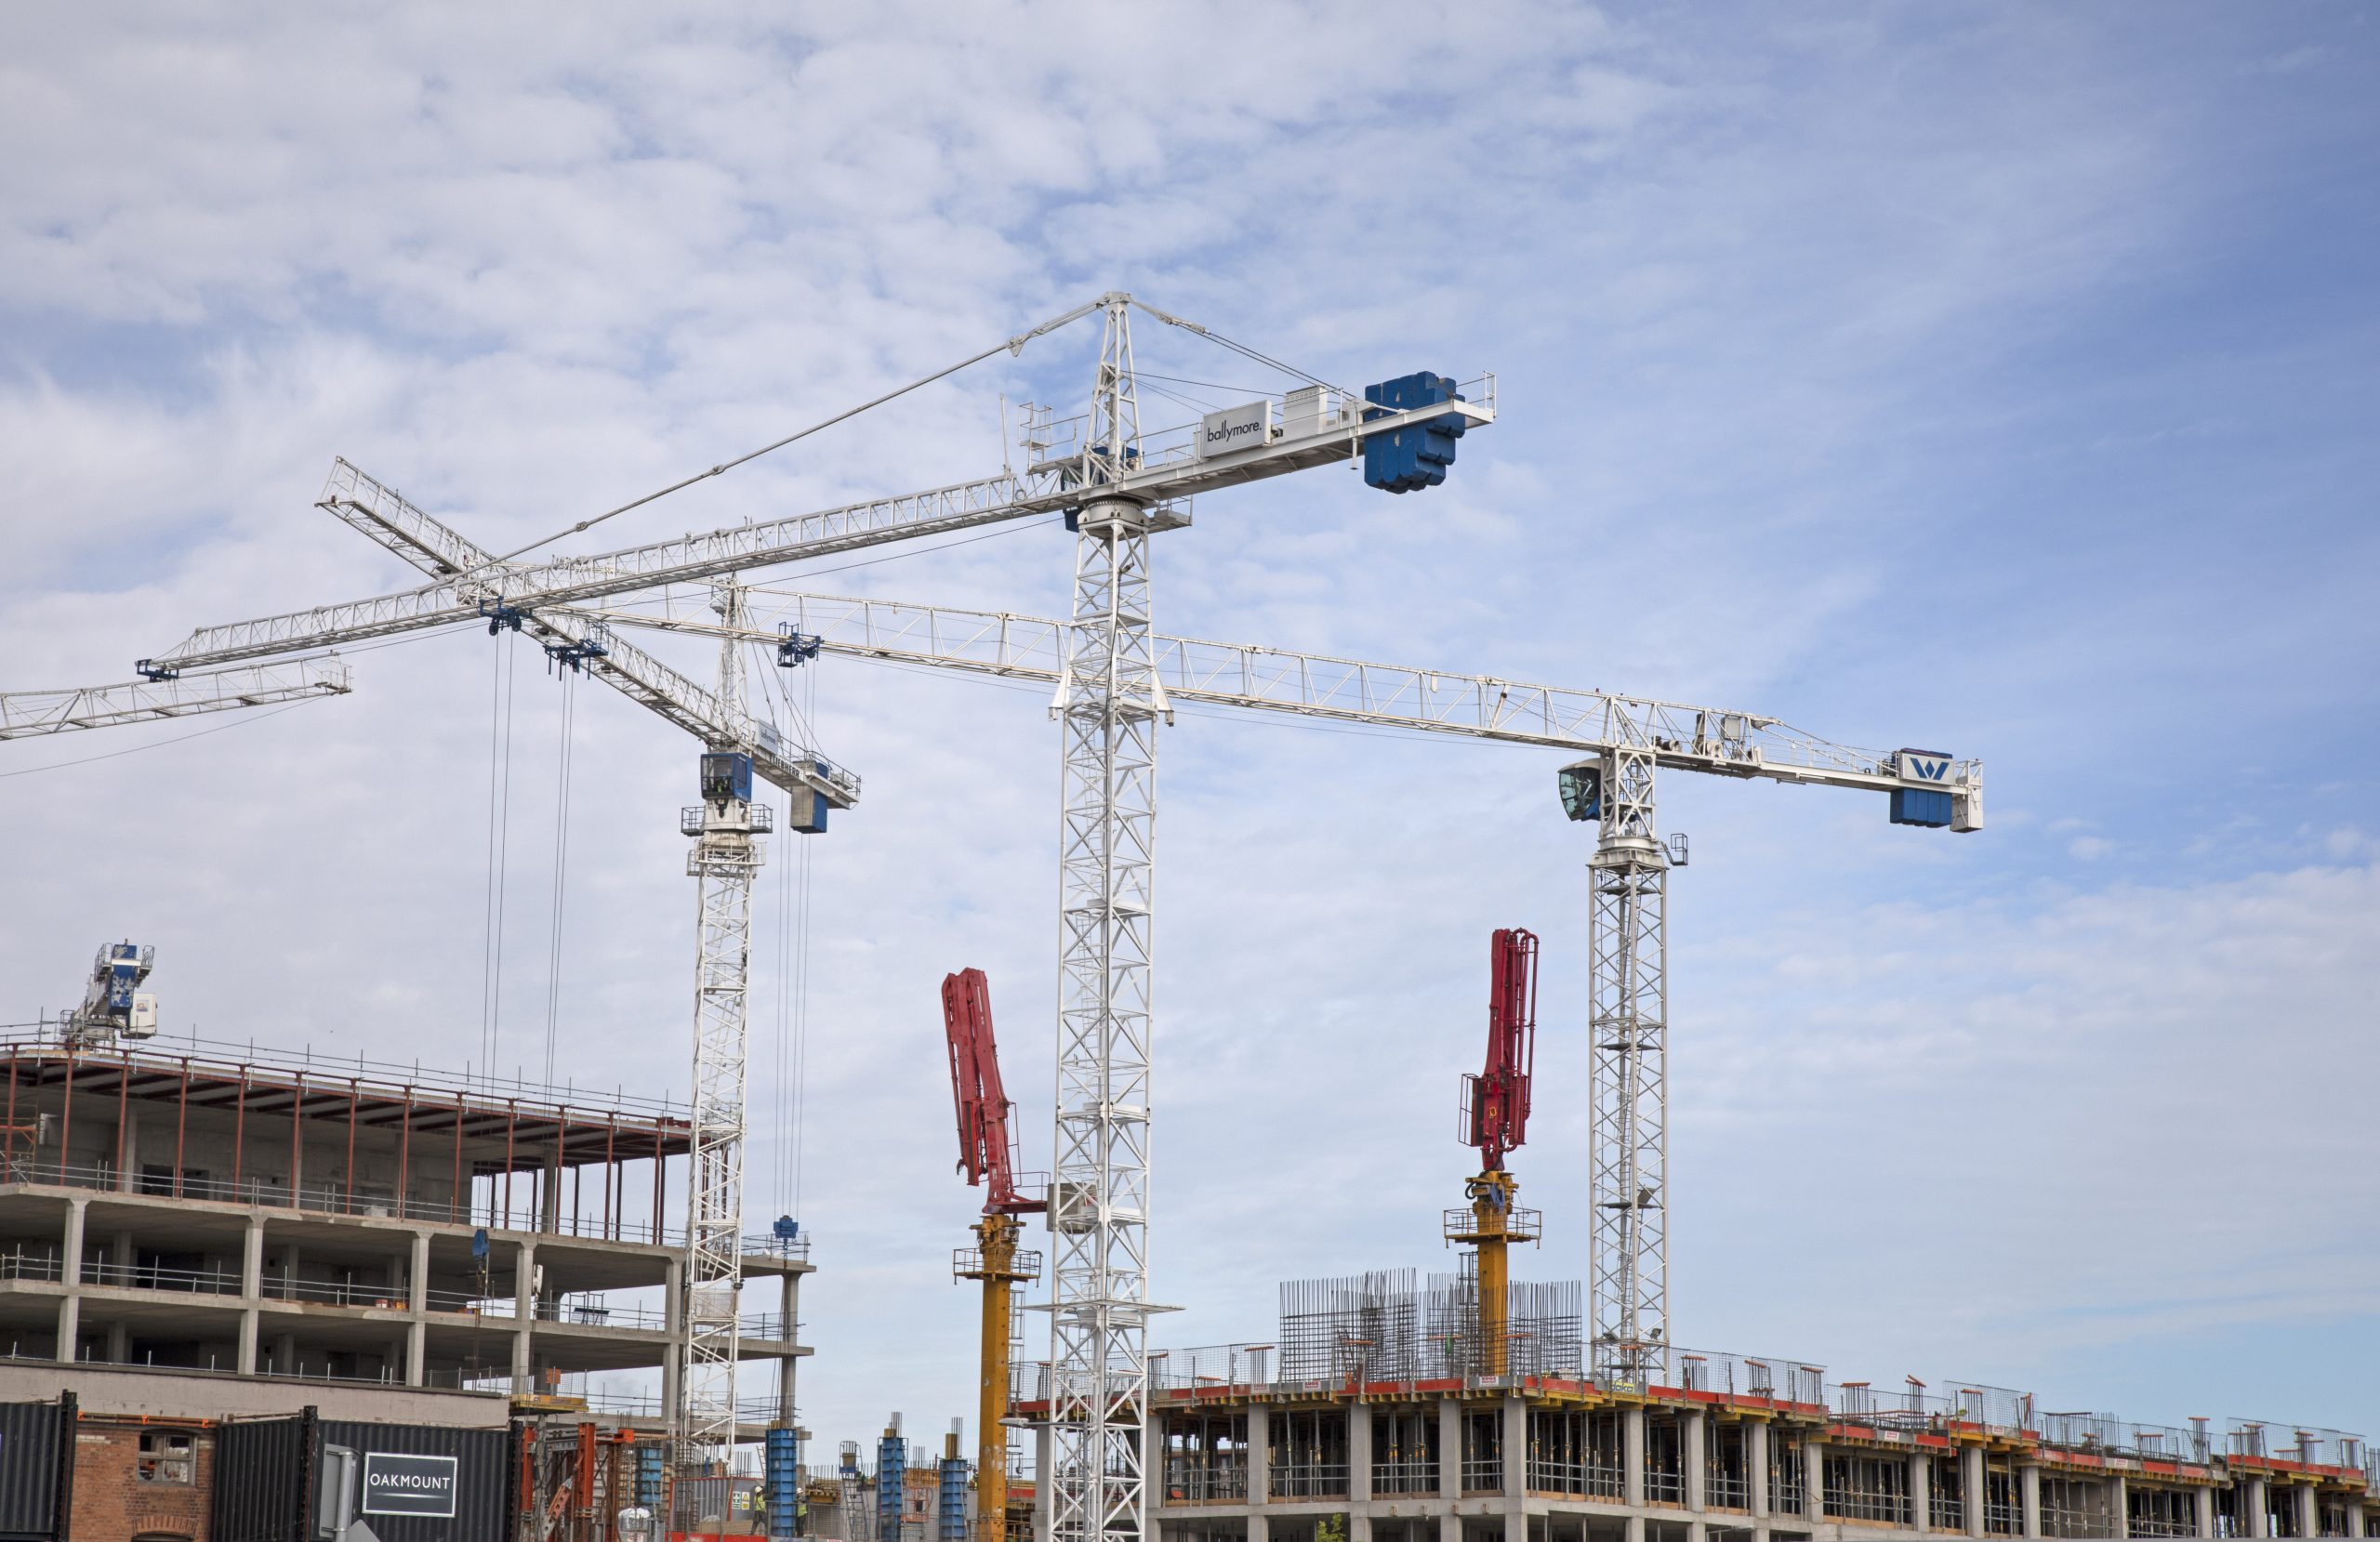 image of cranes in dublin city center